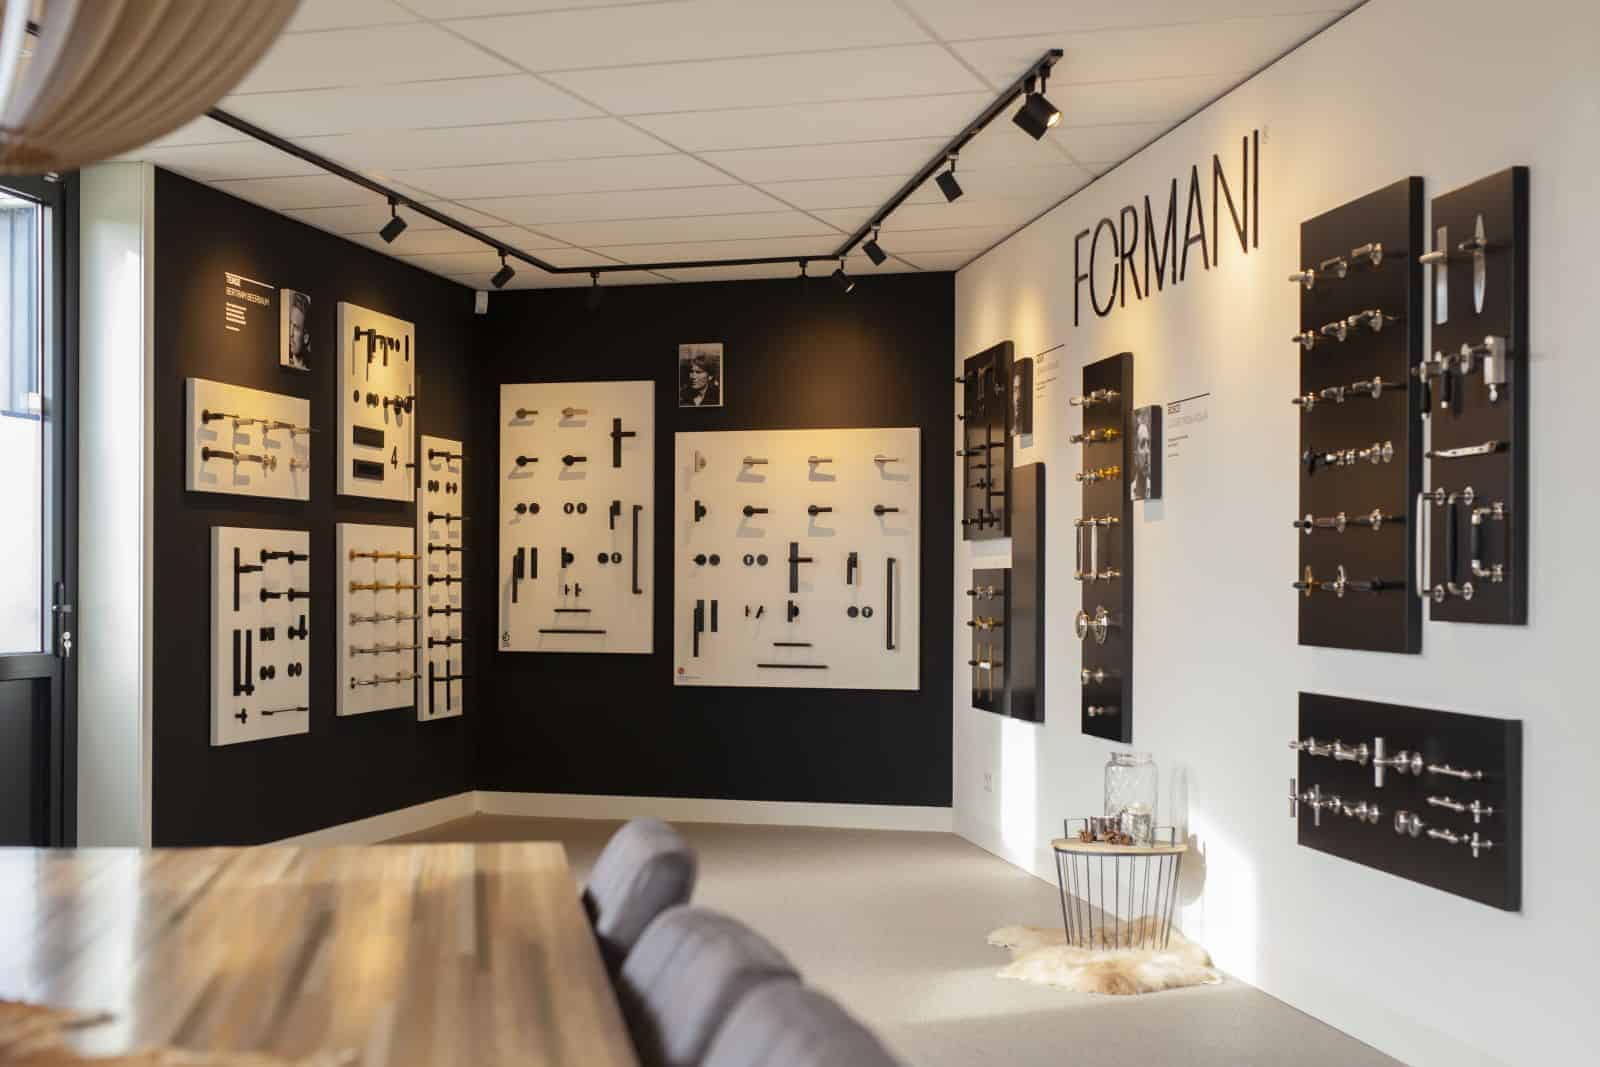 Formani shop in de Findoor showroom